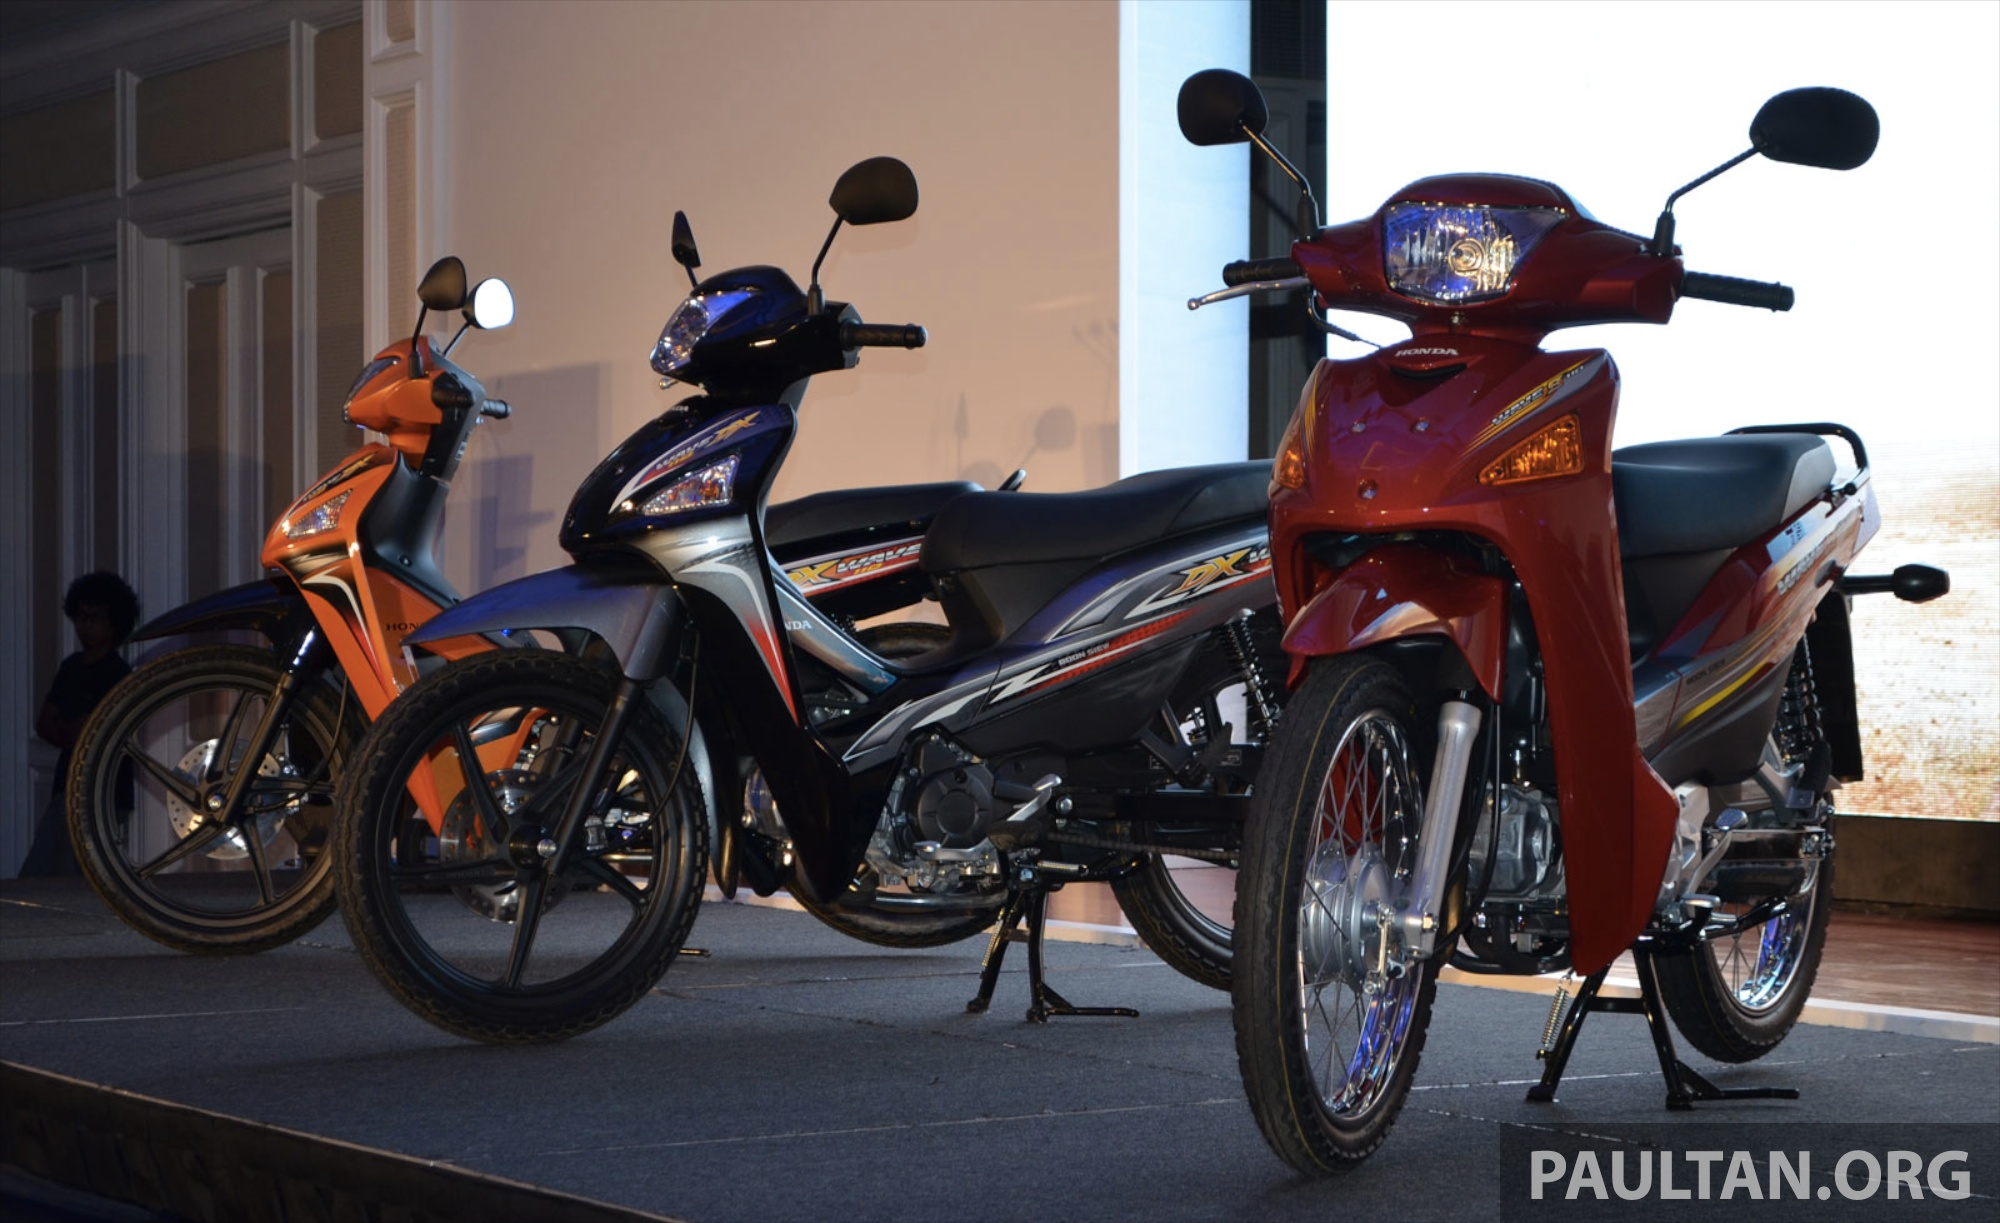 New Honda Wave 110 kapcai launched by Boon Siew